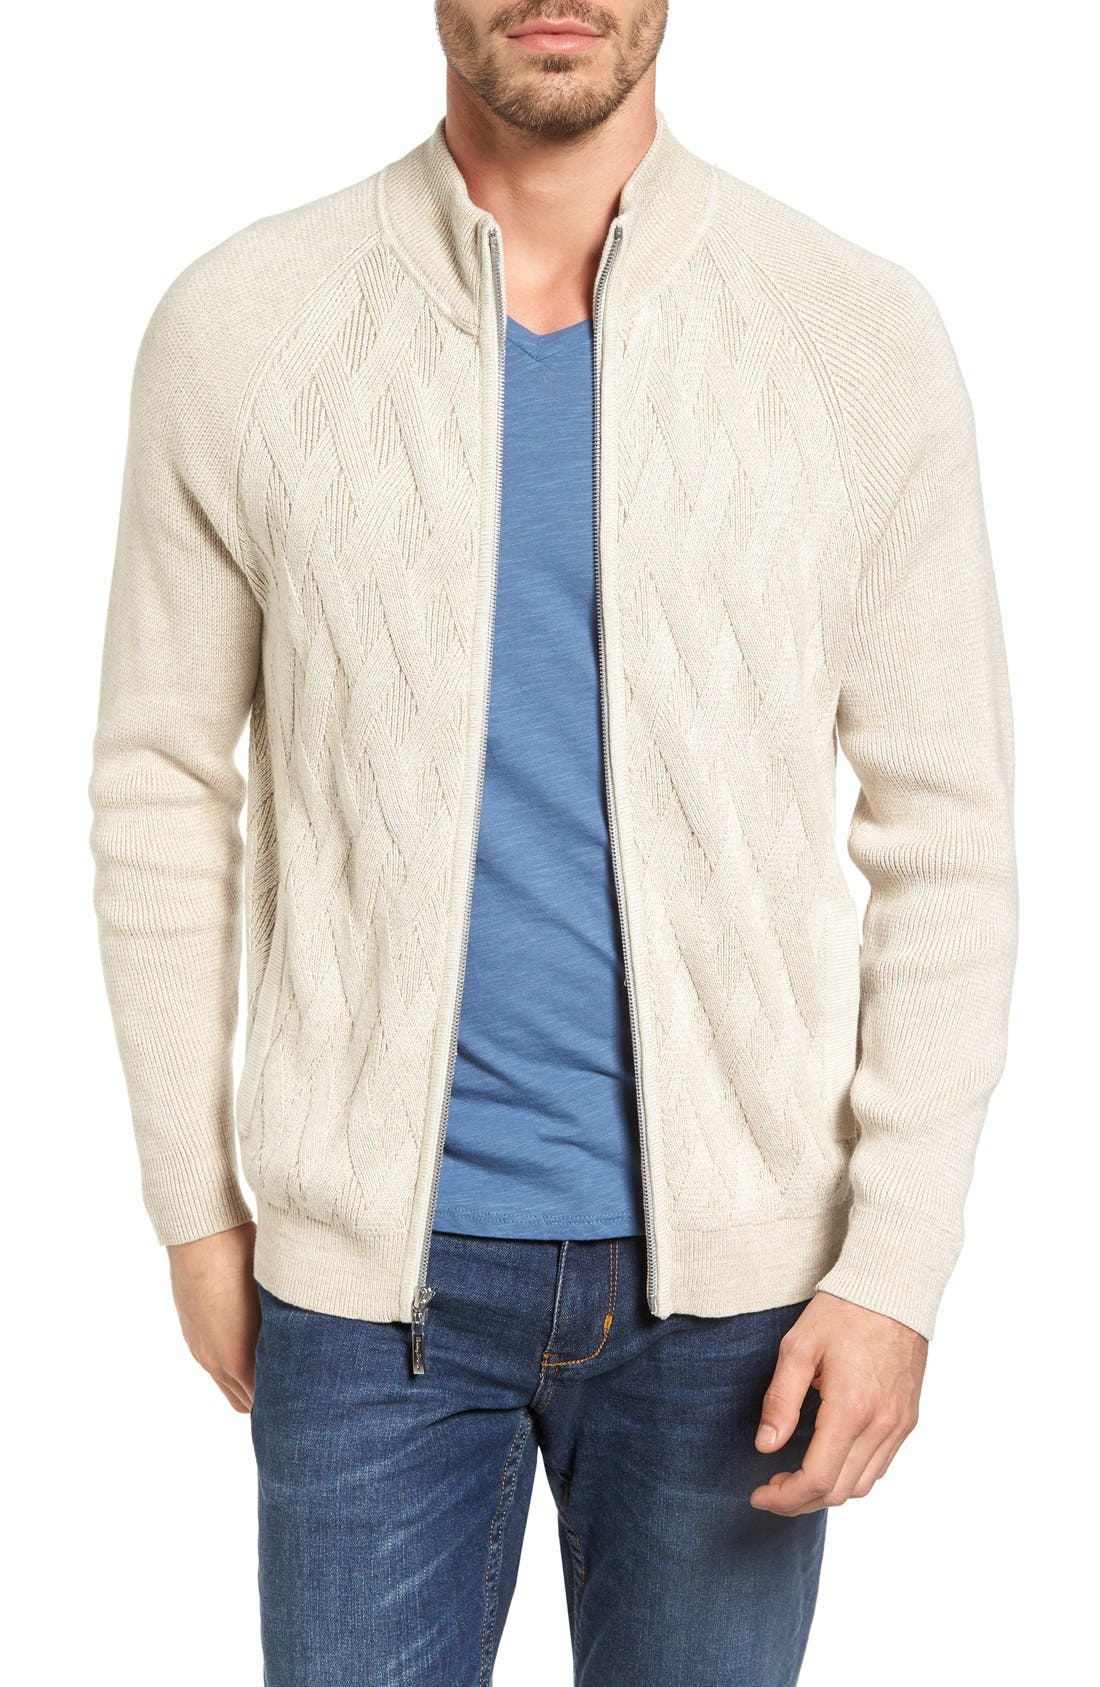 Alternate Image 1 Selected - Tommy Bahama Ocean Crest Zip Cardigan